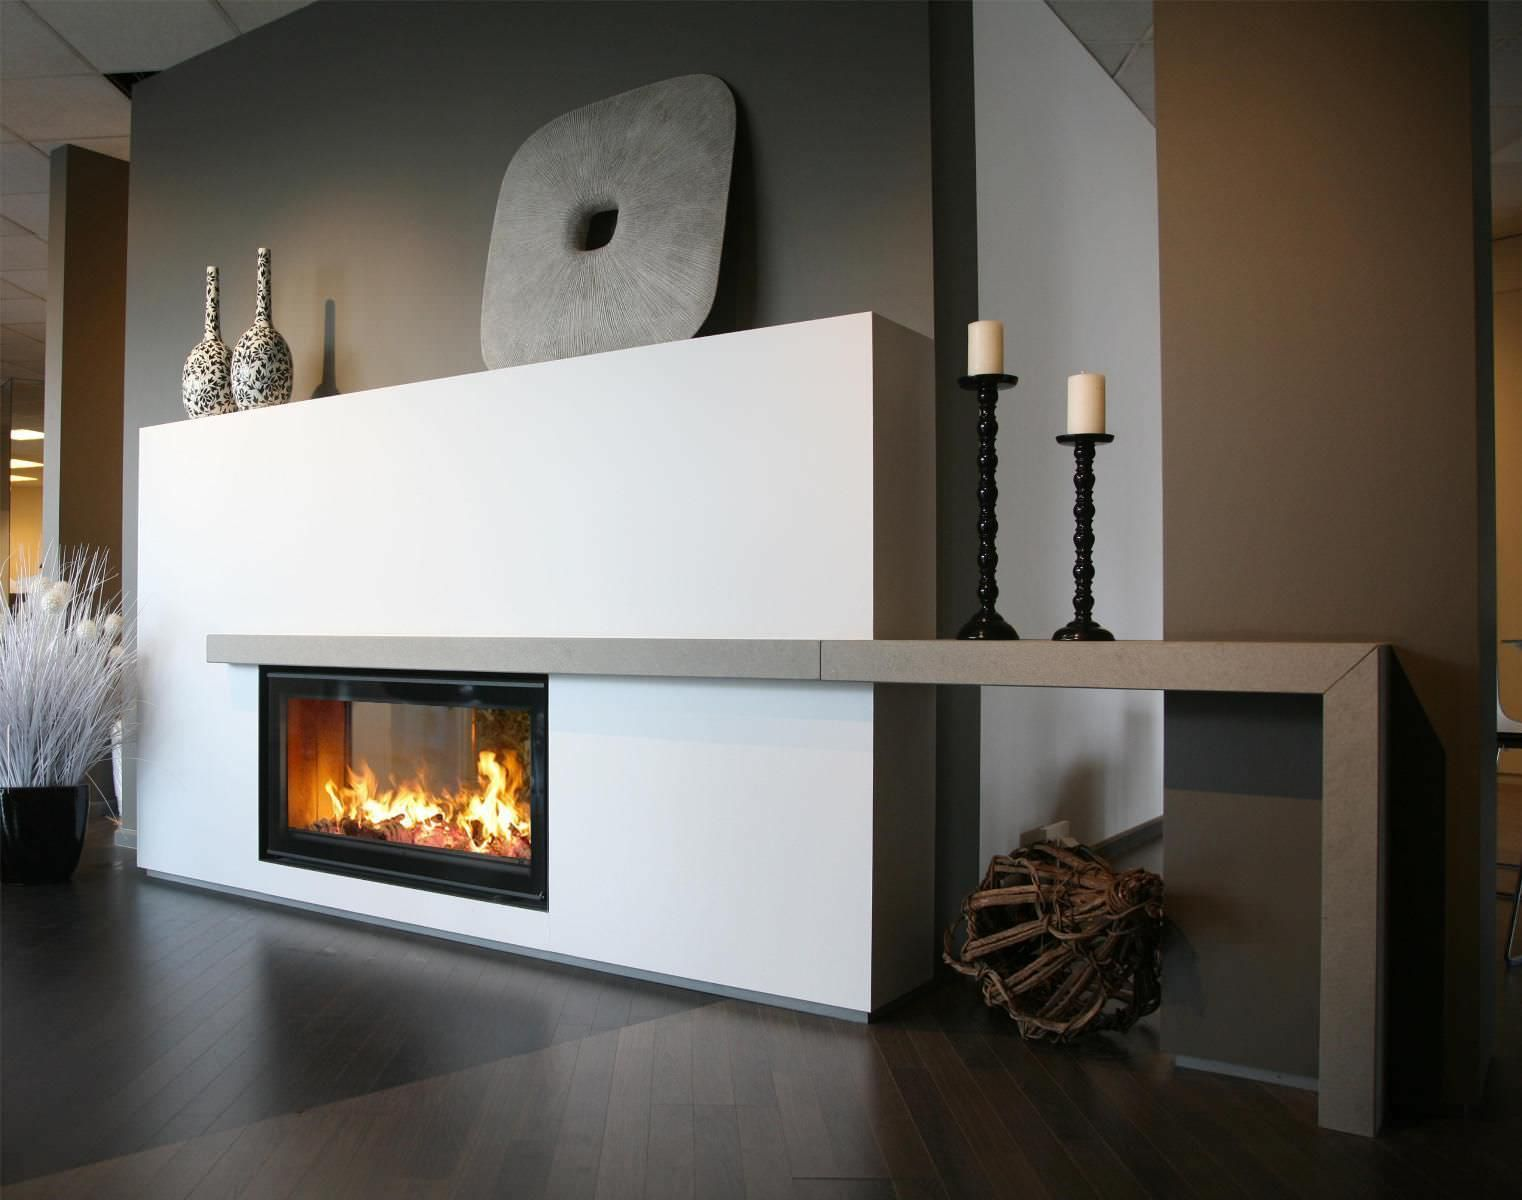 Plain white double sided gas fireplace mantel design with Contemporary wood fireplace insert